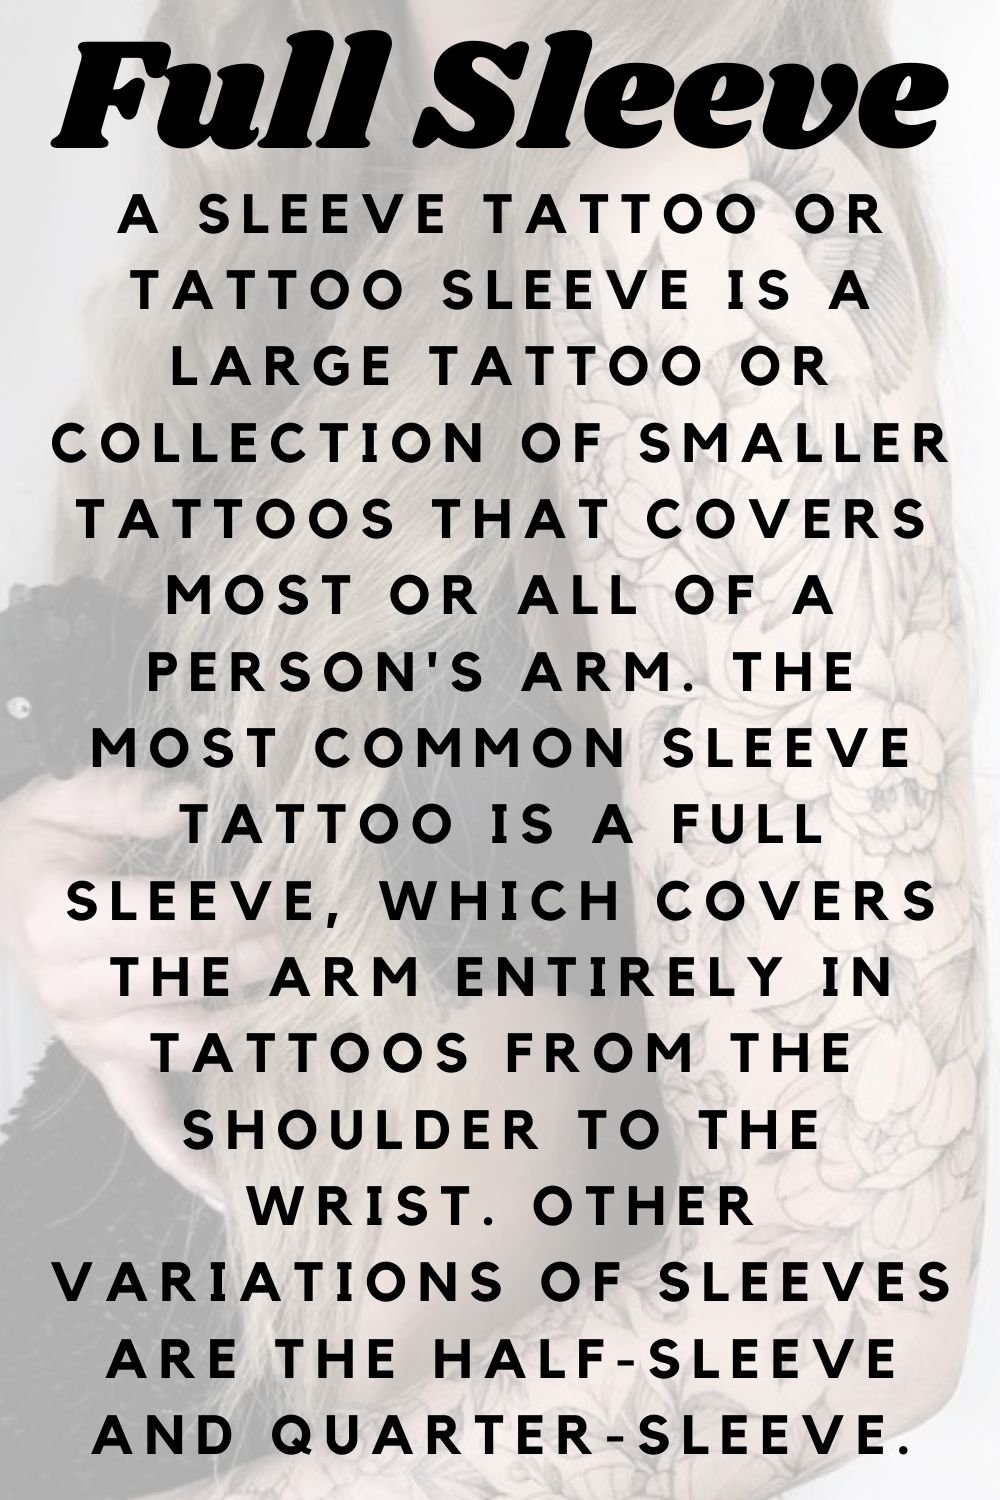 What is a Full Sleeve Tattoo